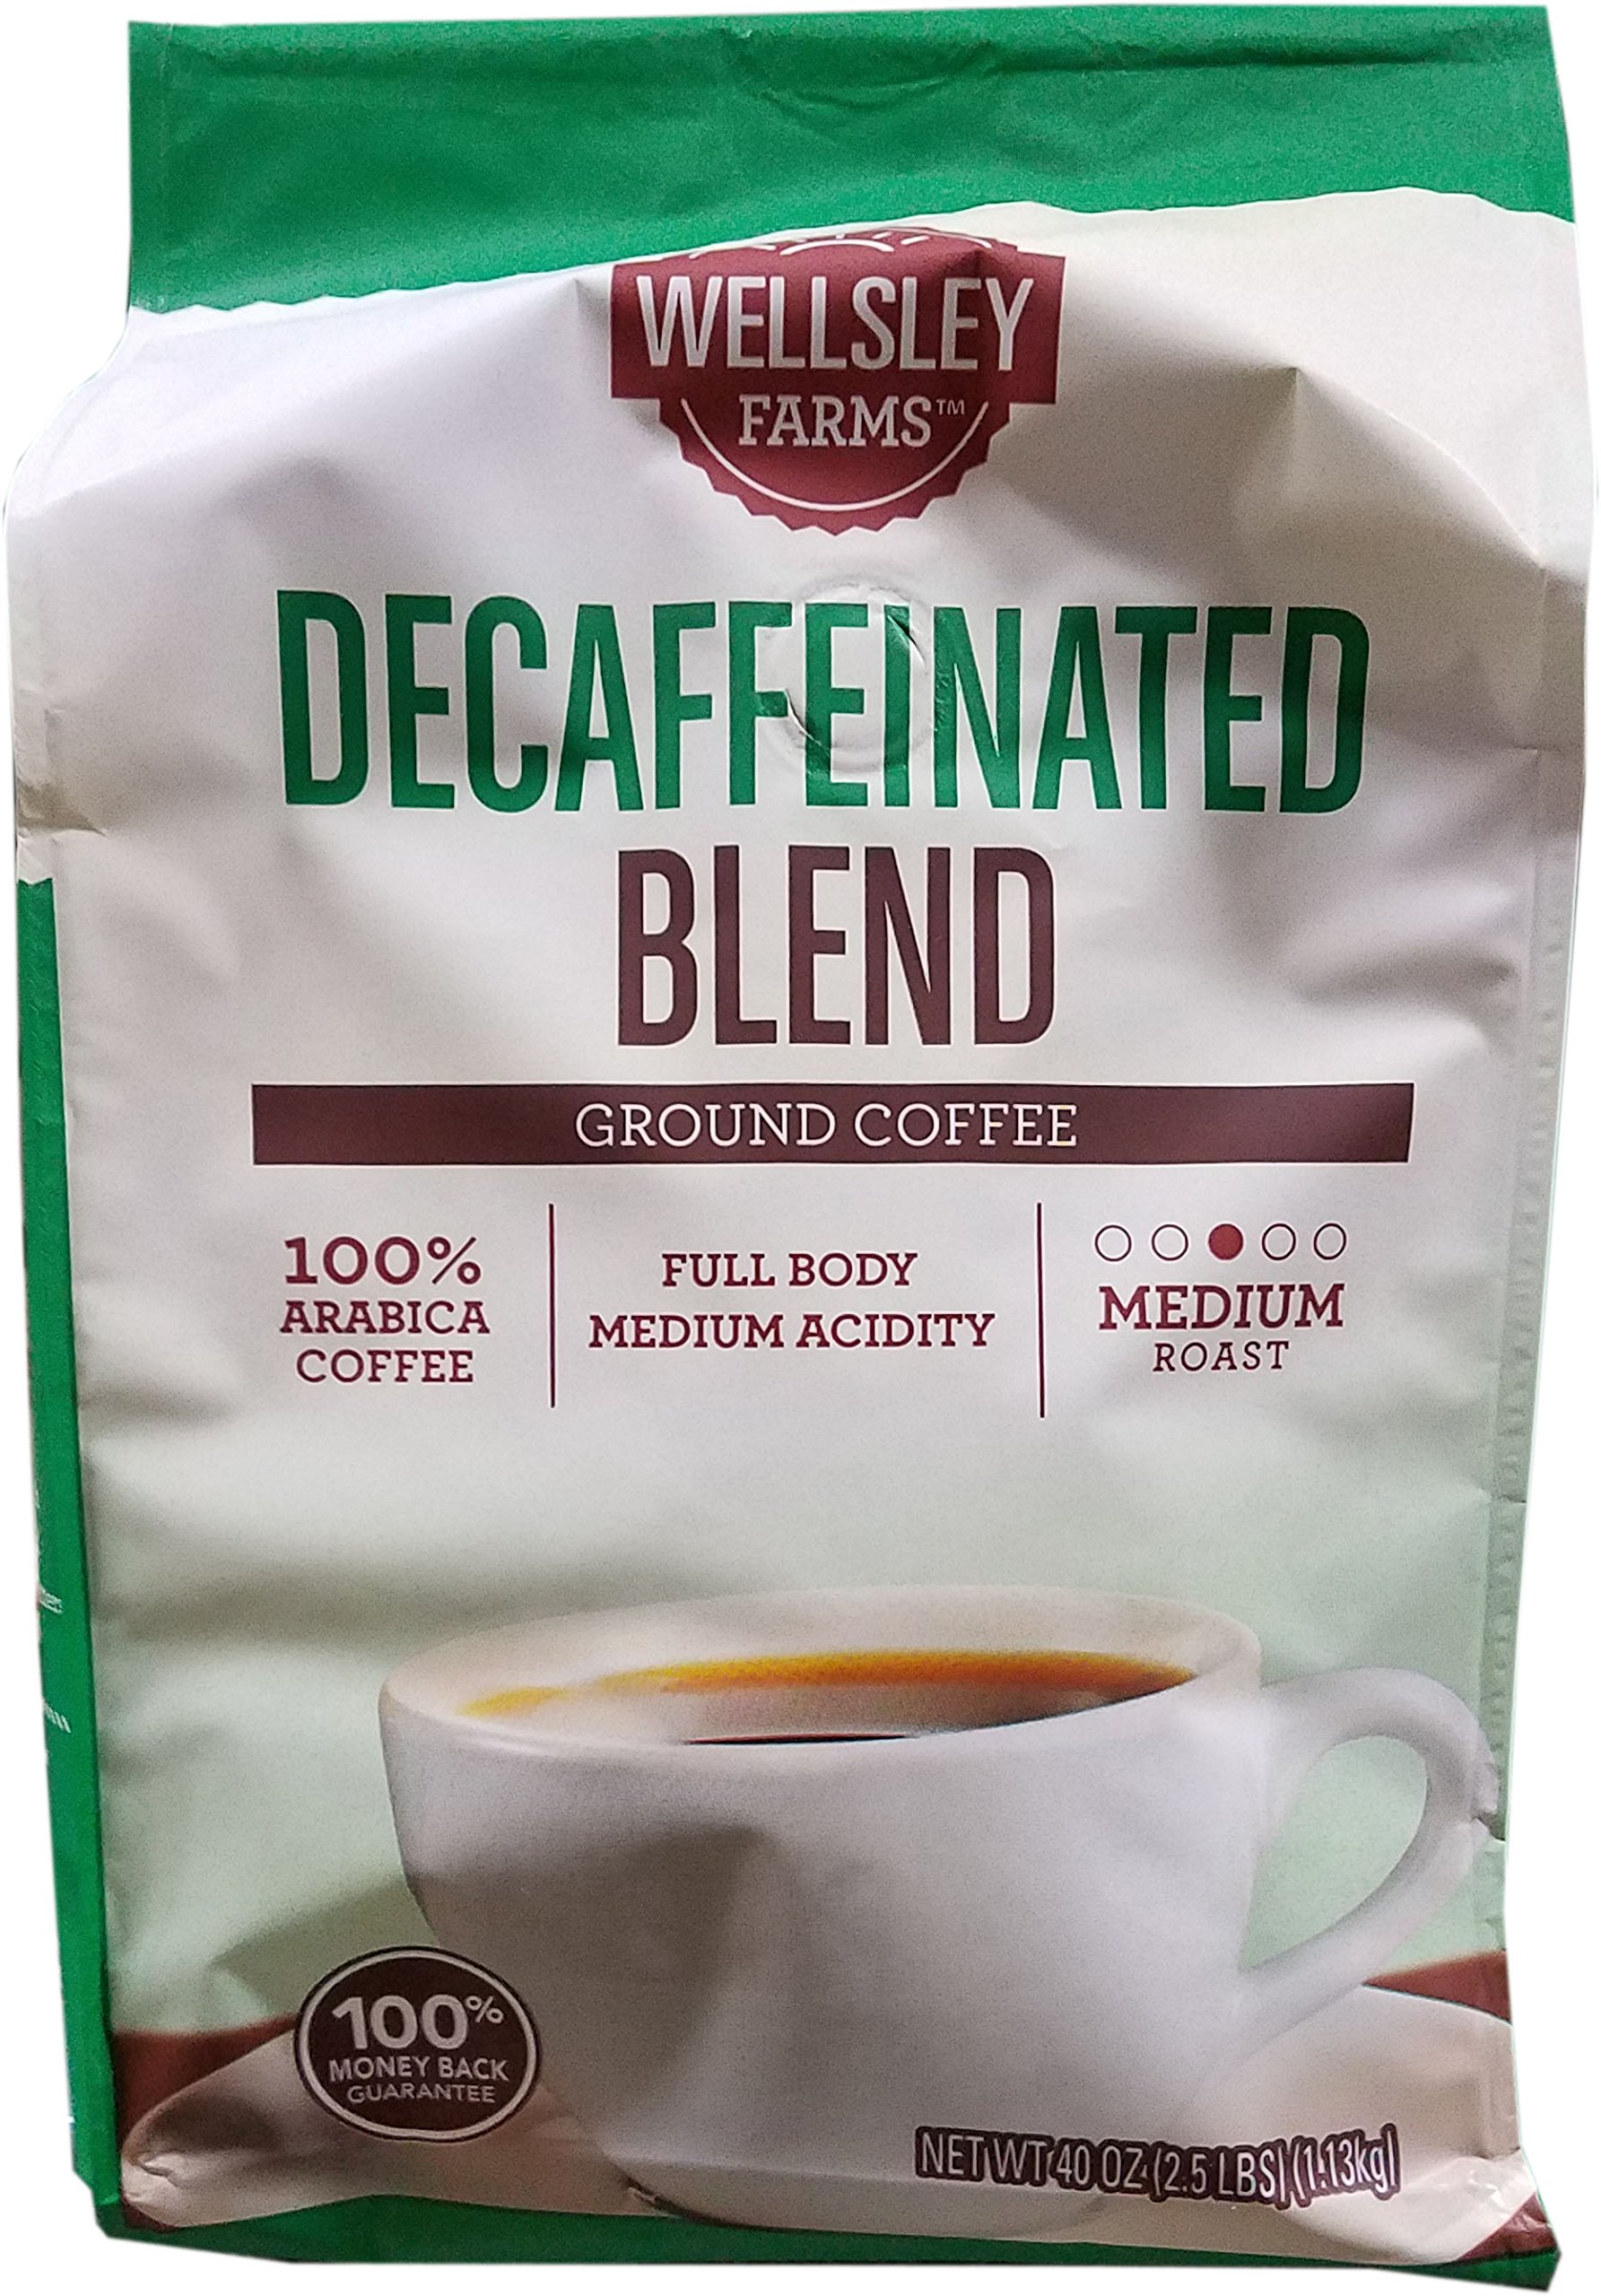 CDM product Wellsley Farms Decaffeinated Medium-Roast Ground Coffee, 40 Ounces big image